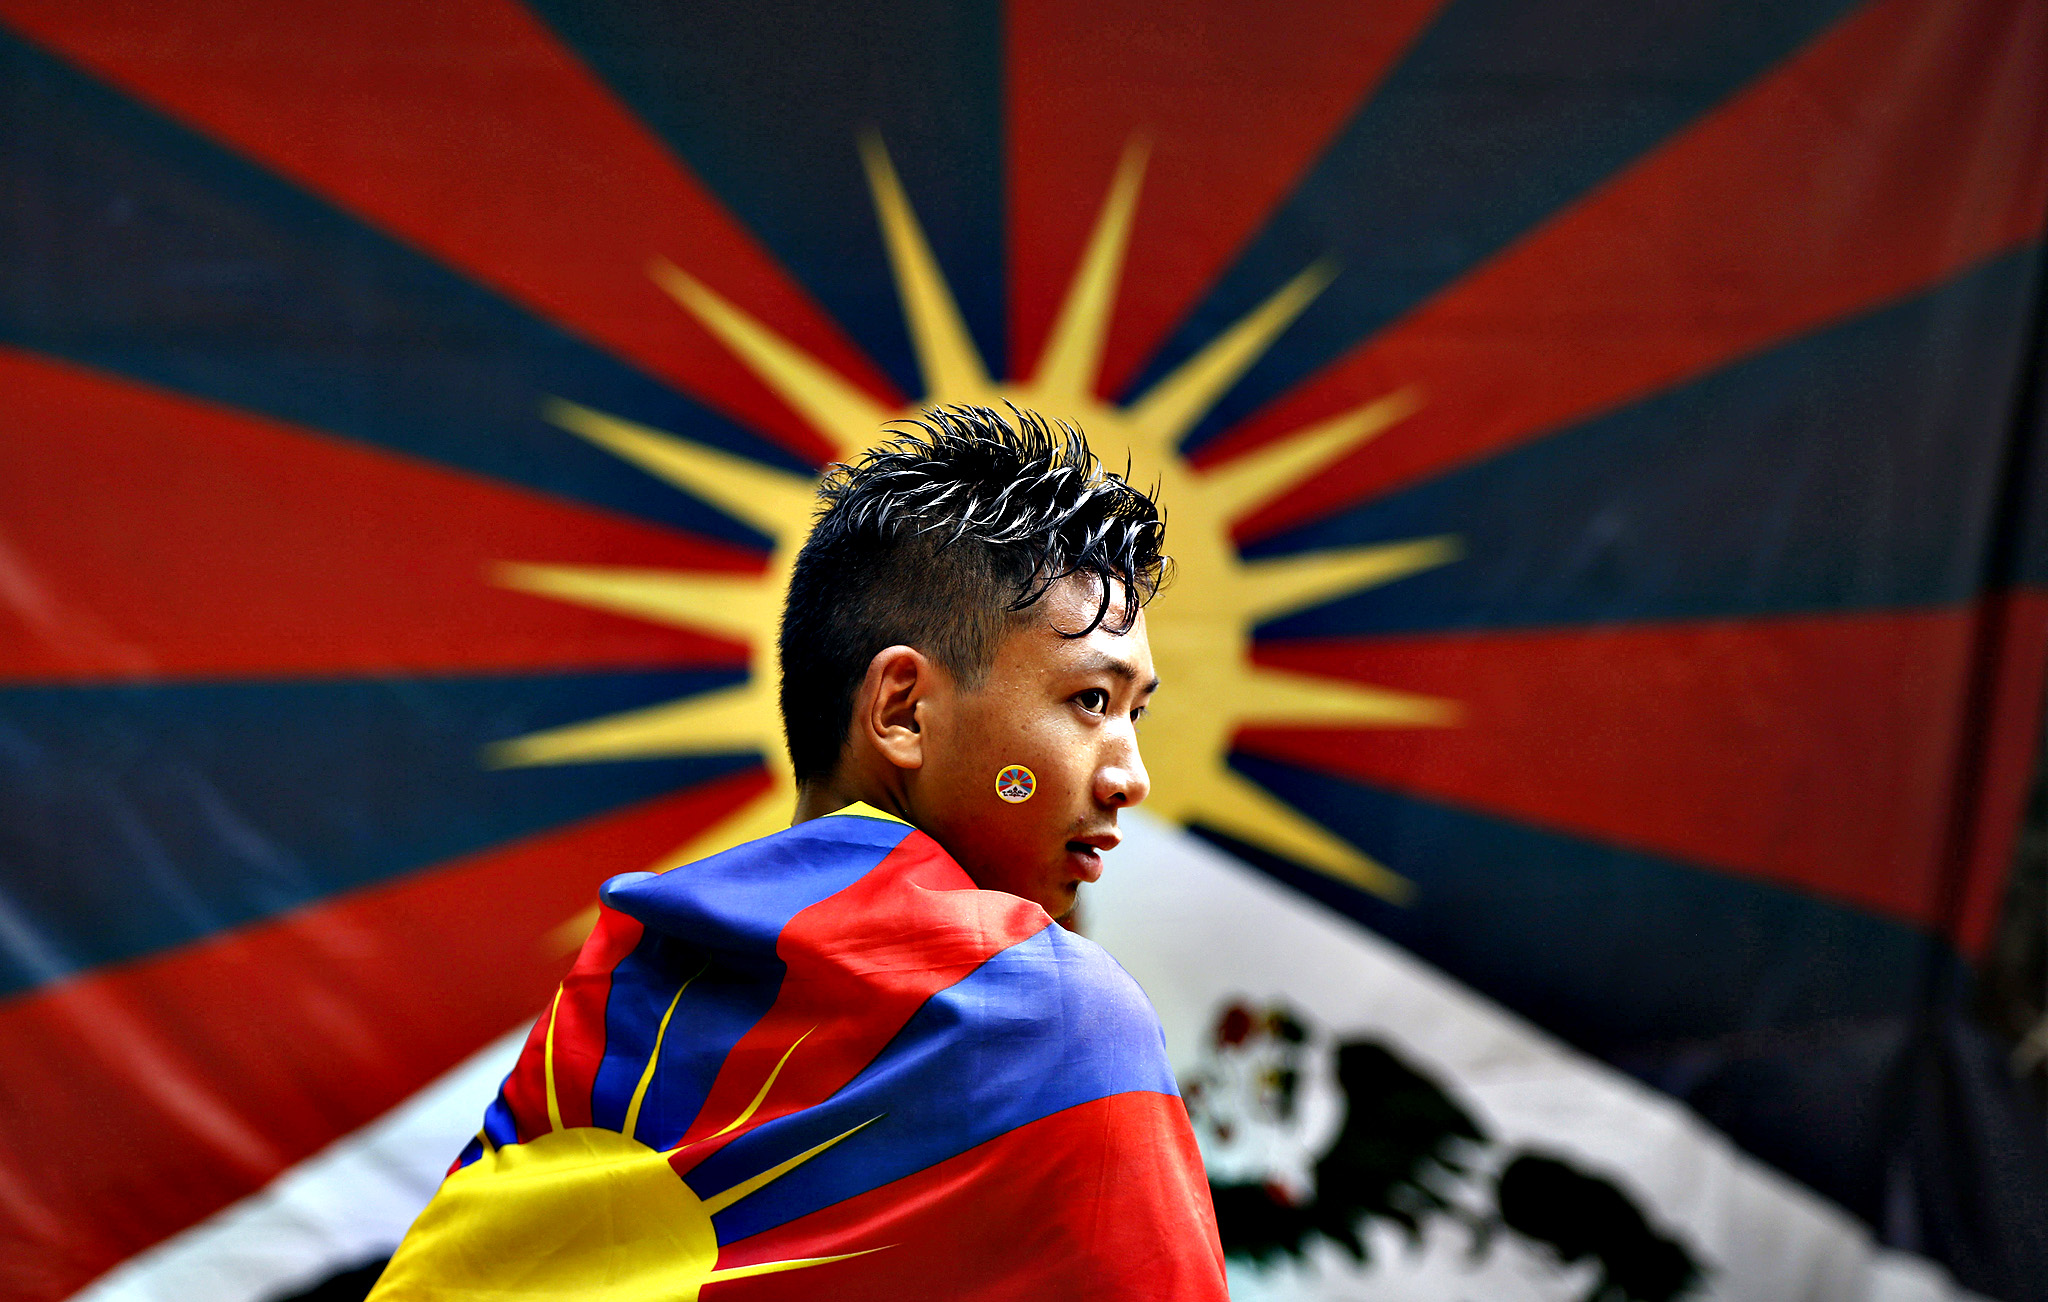 A Tibetan exile wears a Tibetan flag and participates in a protest rally in New Delhi, India, Wednesday, Nov. 6, 2013. The rally was held to seek the attention of the international community towards the plight of Tibetans in Tibet and for the release of Tibetan political prisoners in China, among others, according to a press release.